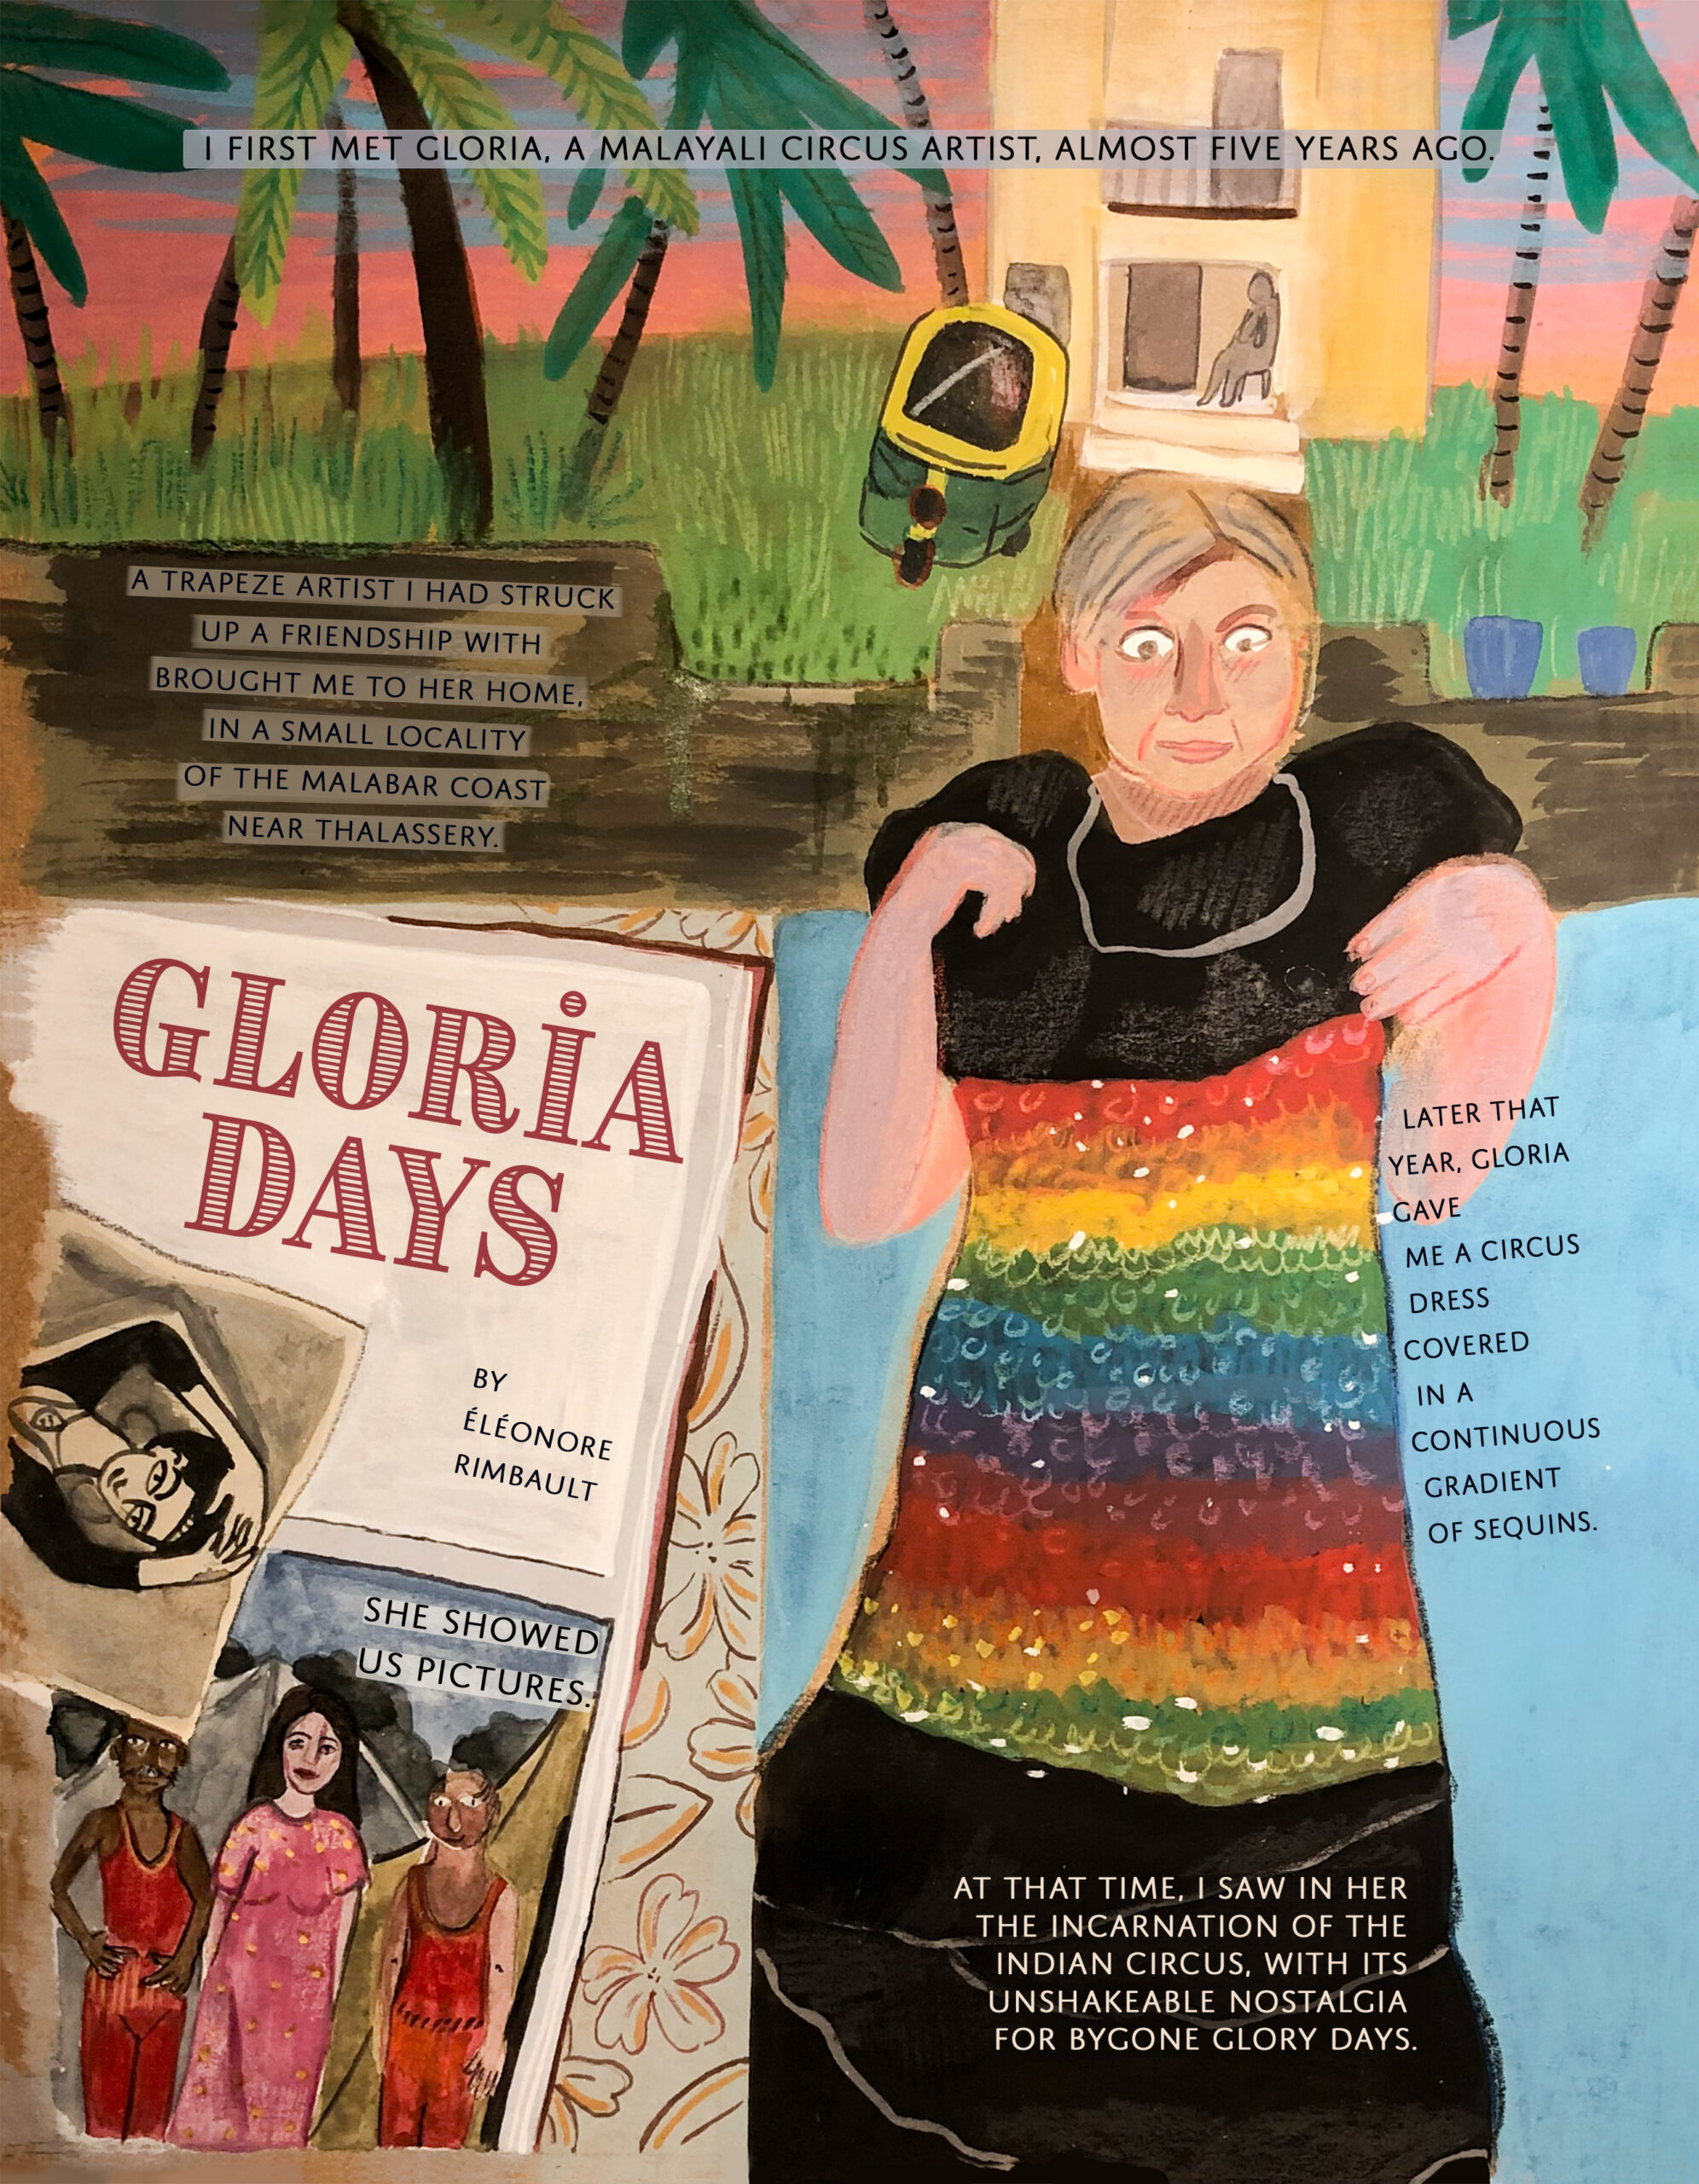 Comic panel featuring a retired female circus artist holding a circus dress. Her photo album, and the outside of her house are also featured in the image.